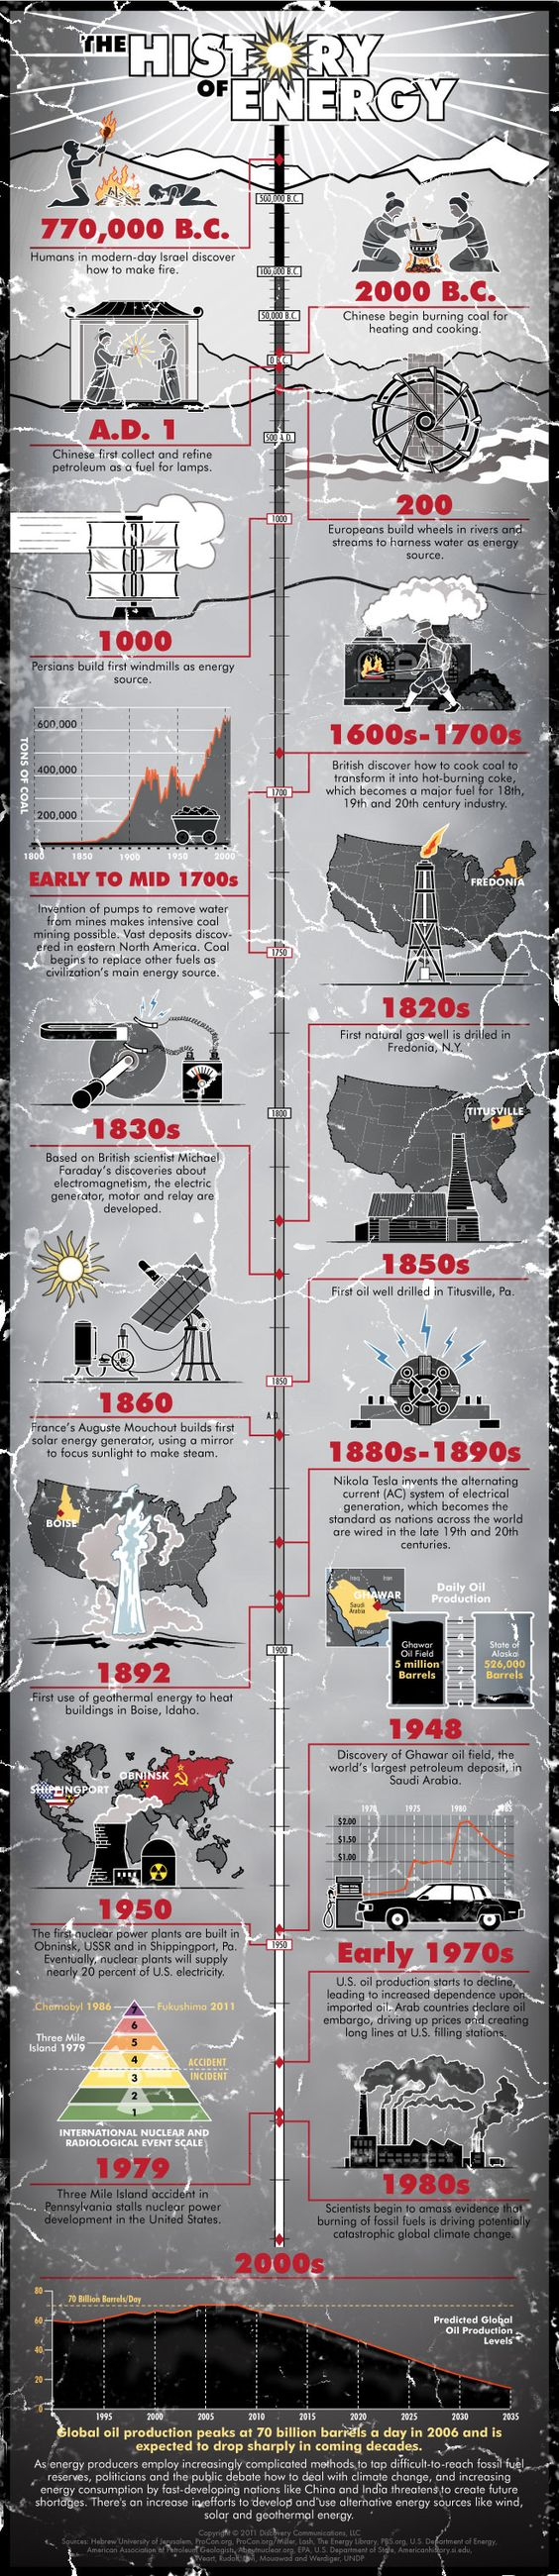 history-of-energy